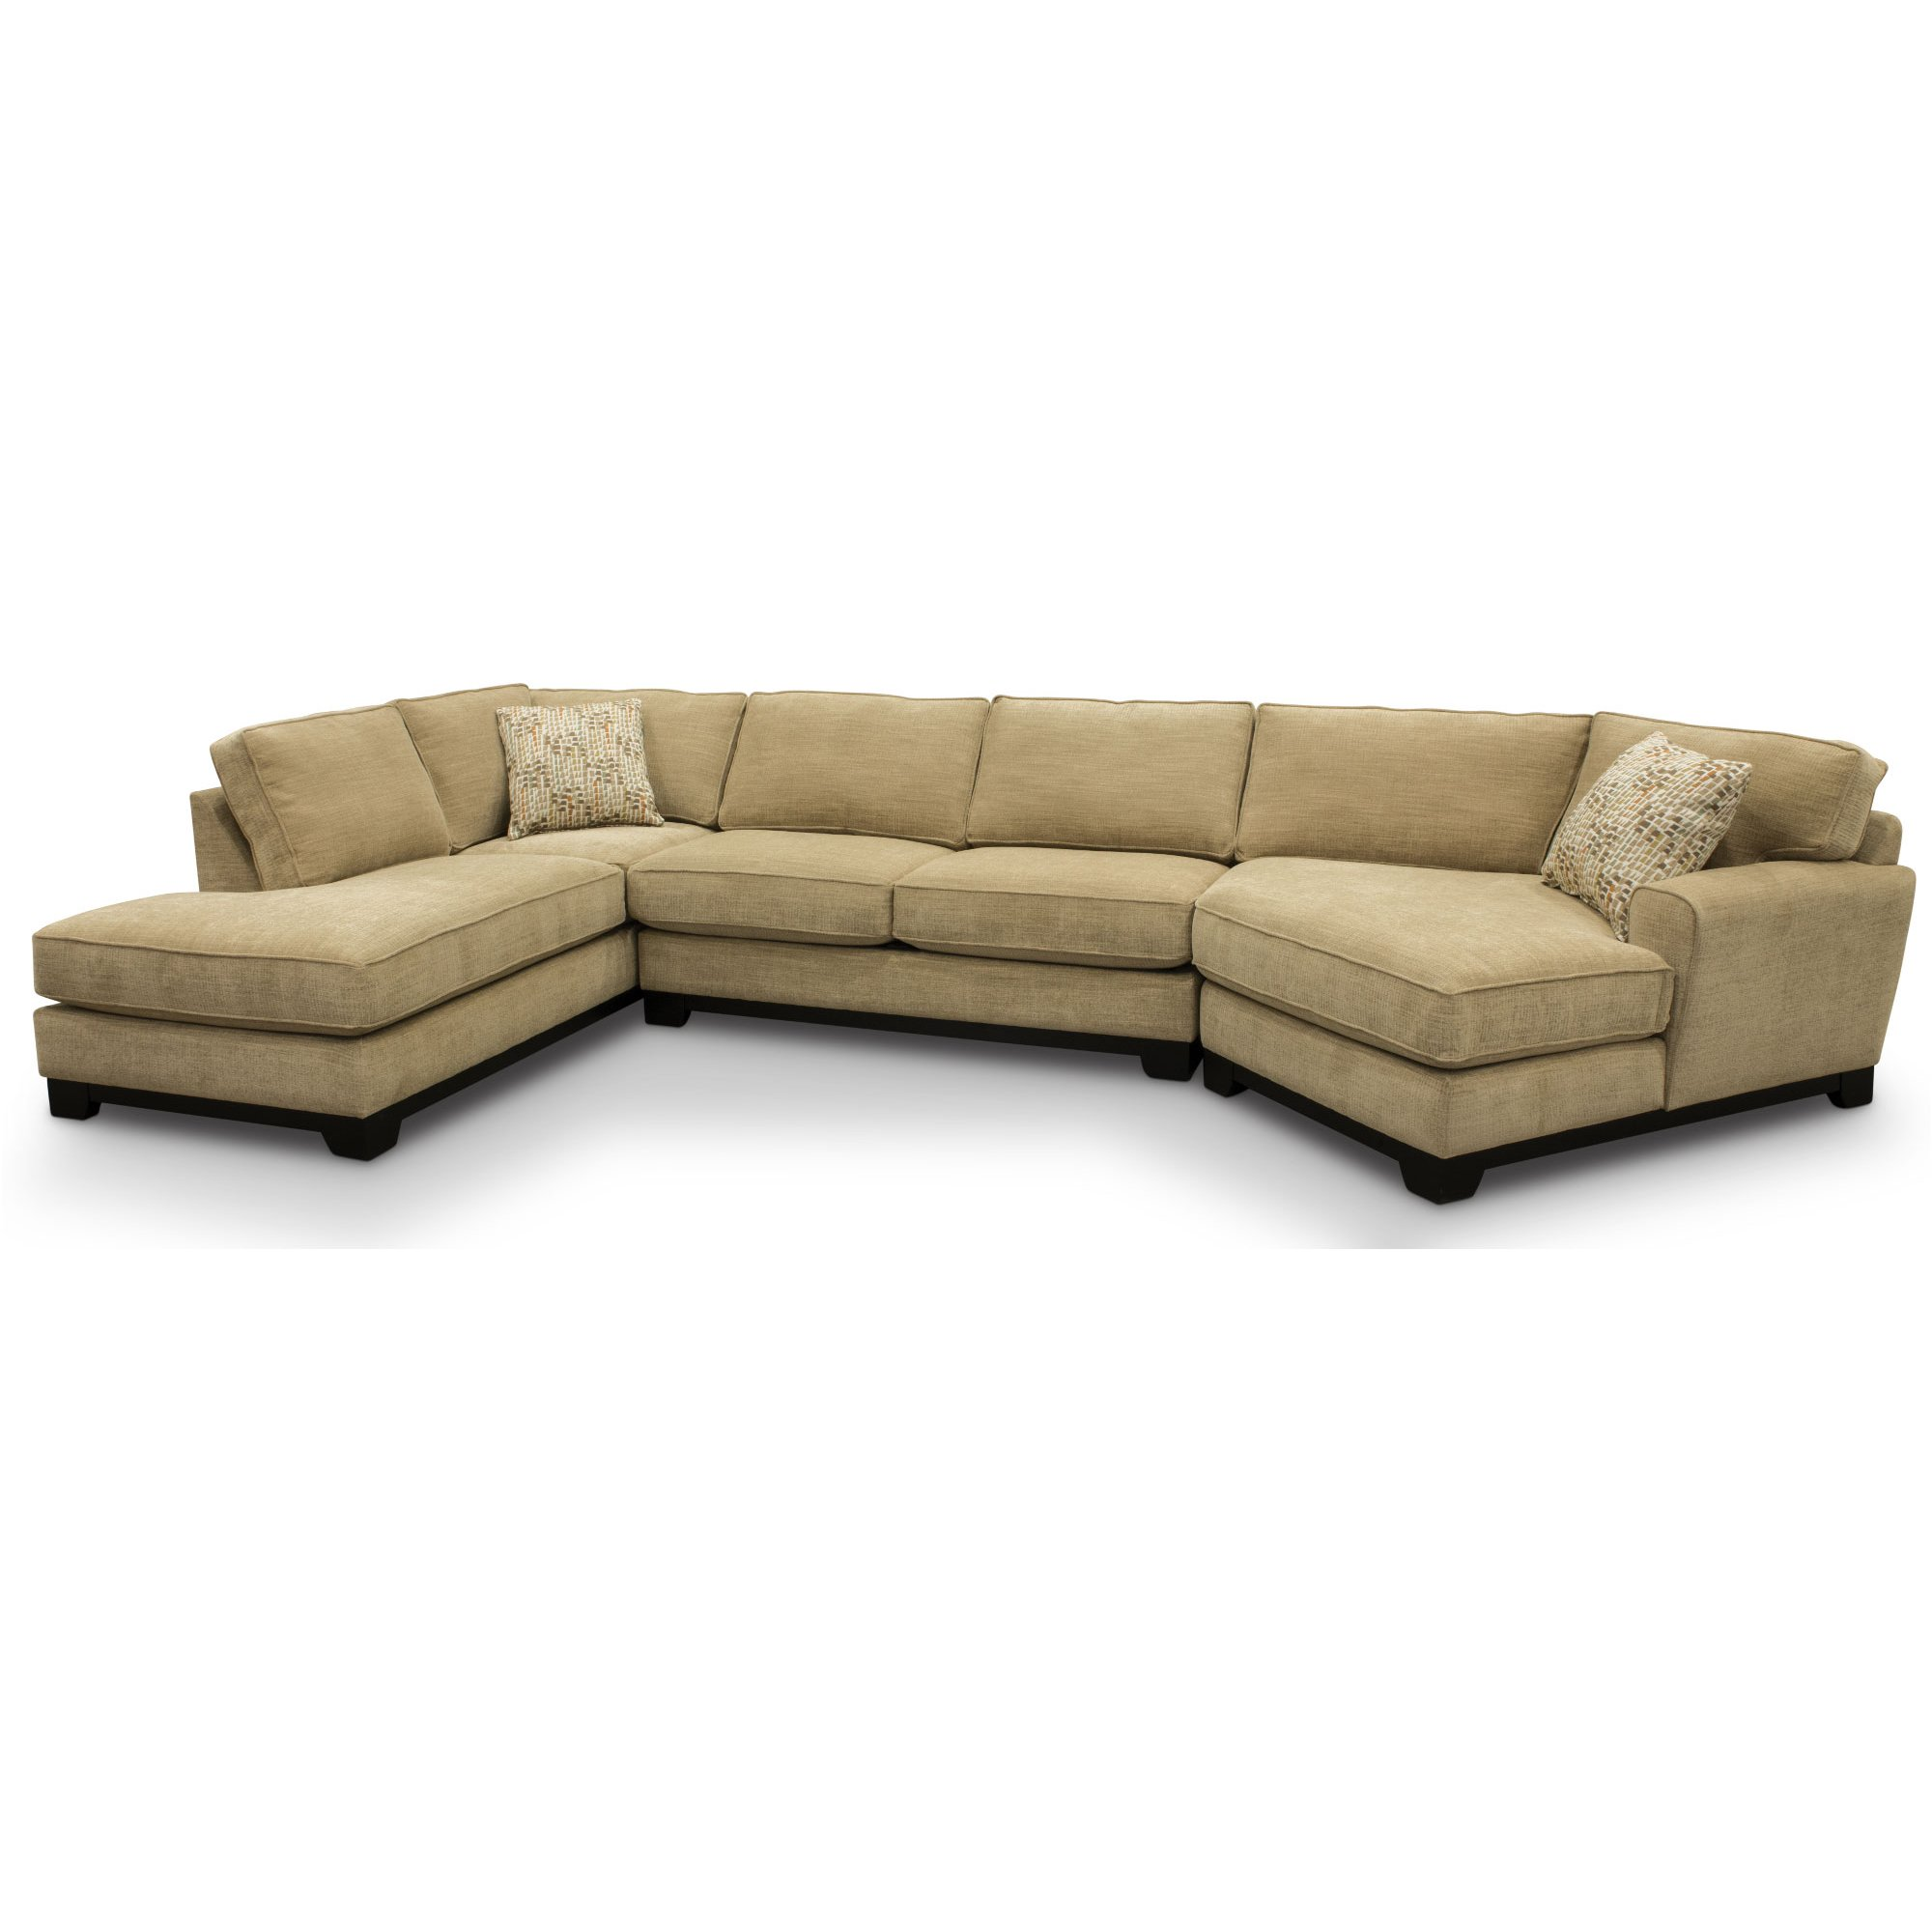 Beige 3 Piece Sectional Sofa with LAF Chaise - Pisces